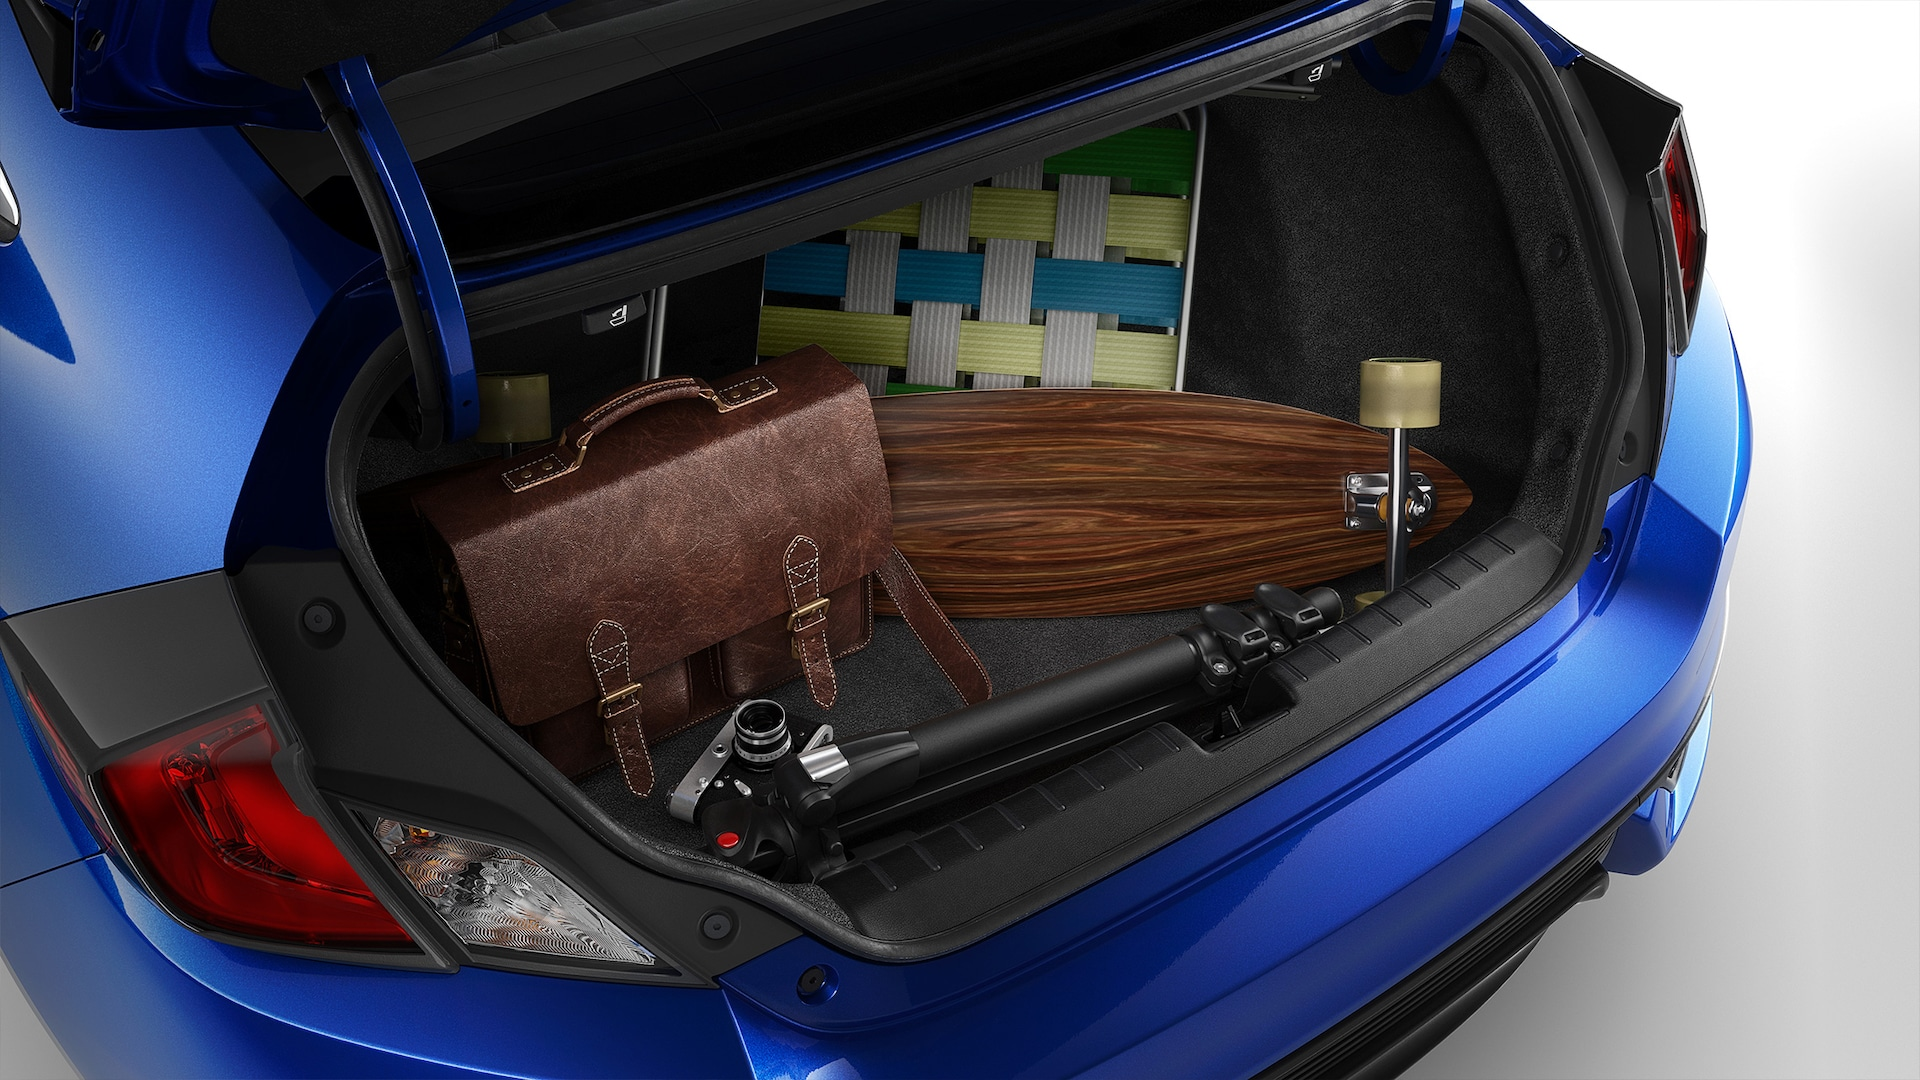 Open trunk detail of the 2020 Honda Civic Touring Coupe with various everyday items inside.